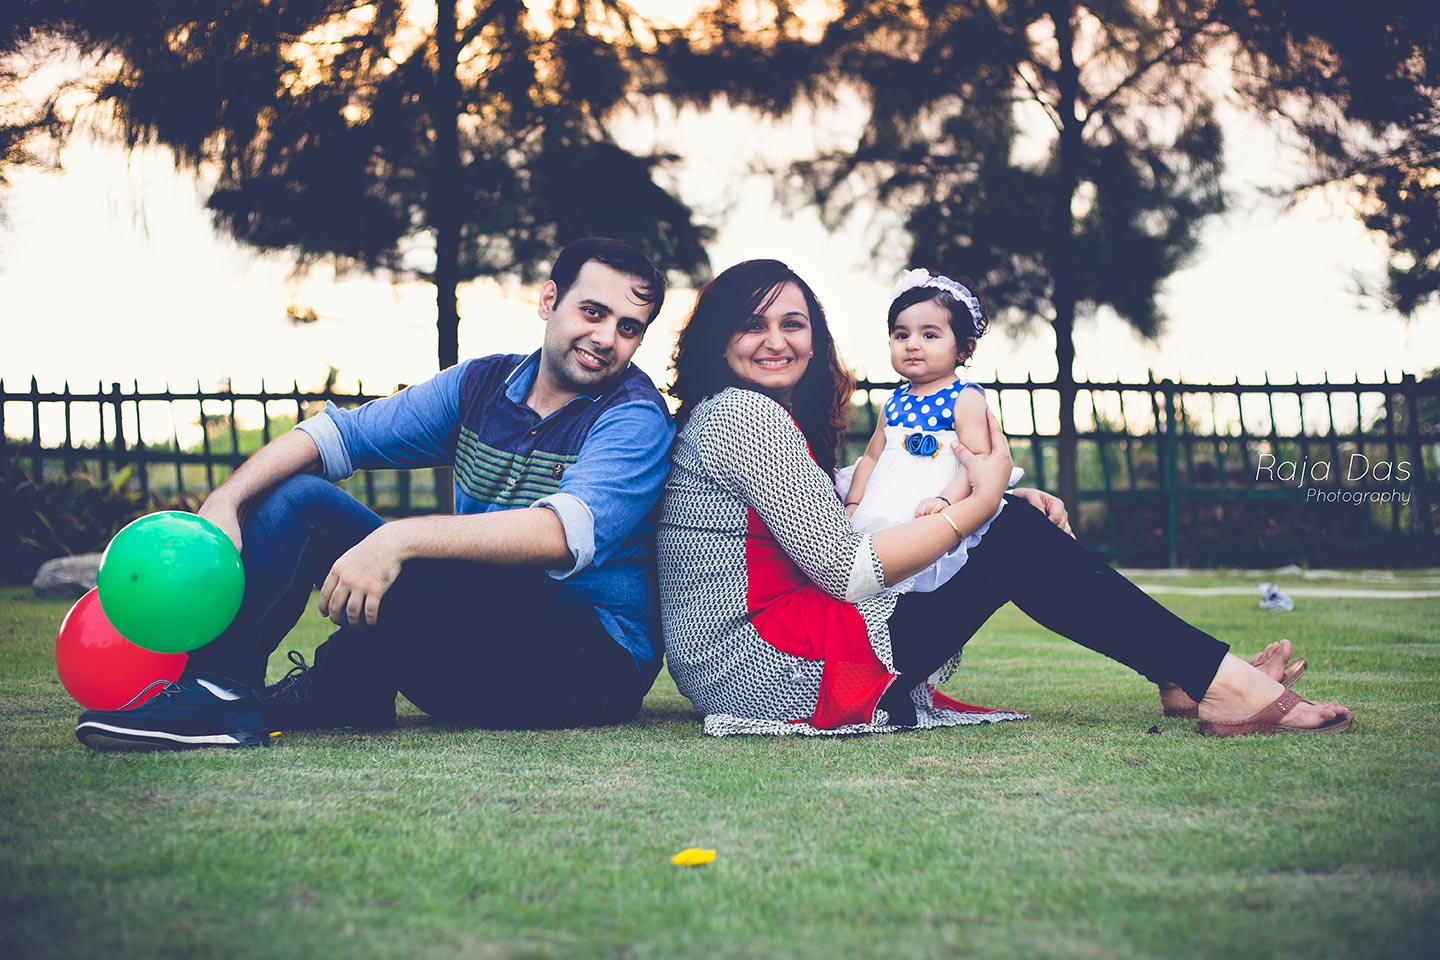 Kids  and maternity photography will be special with us